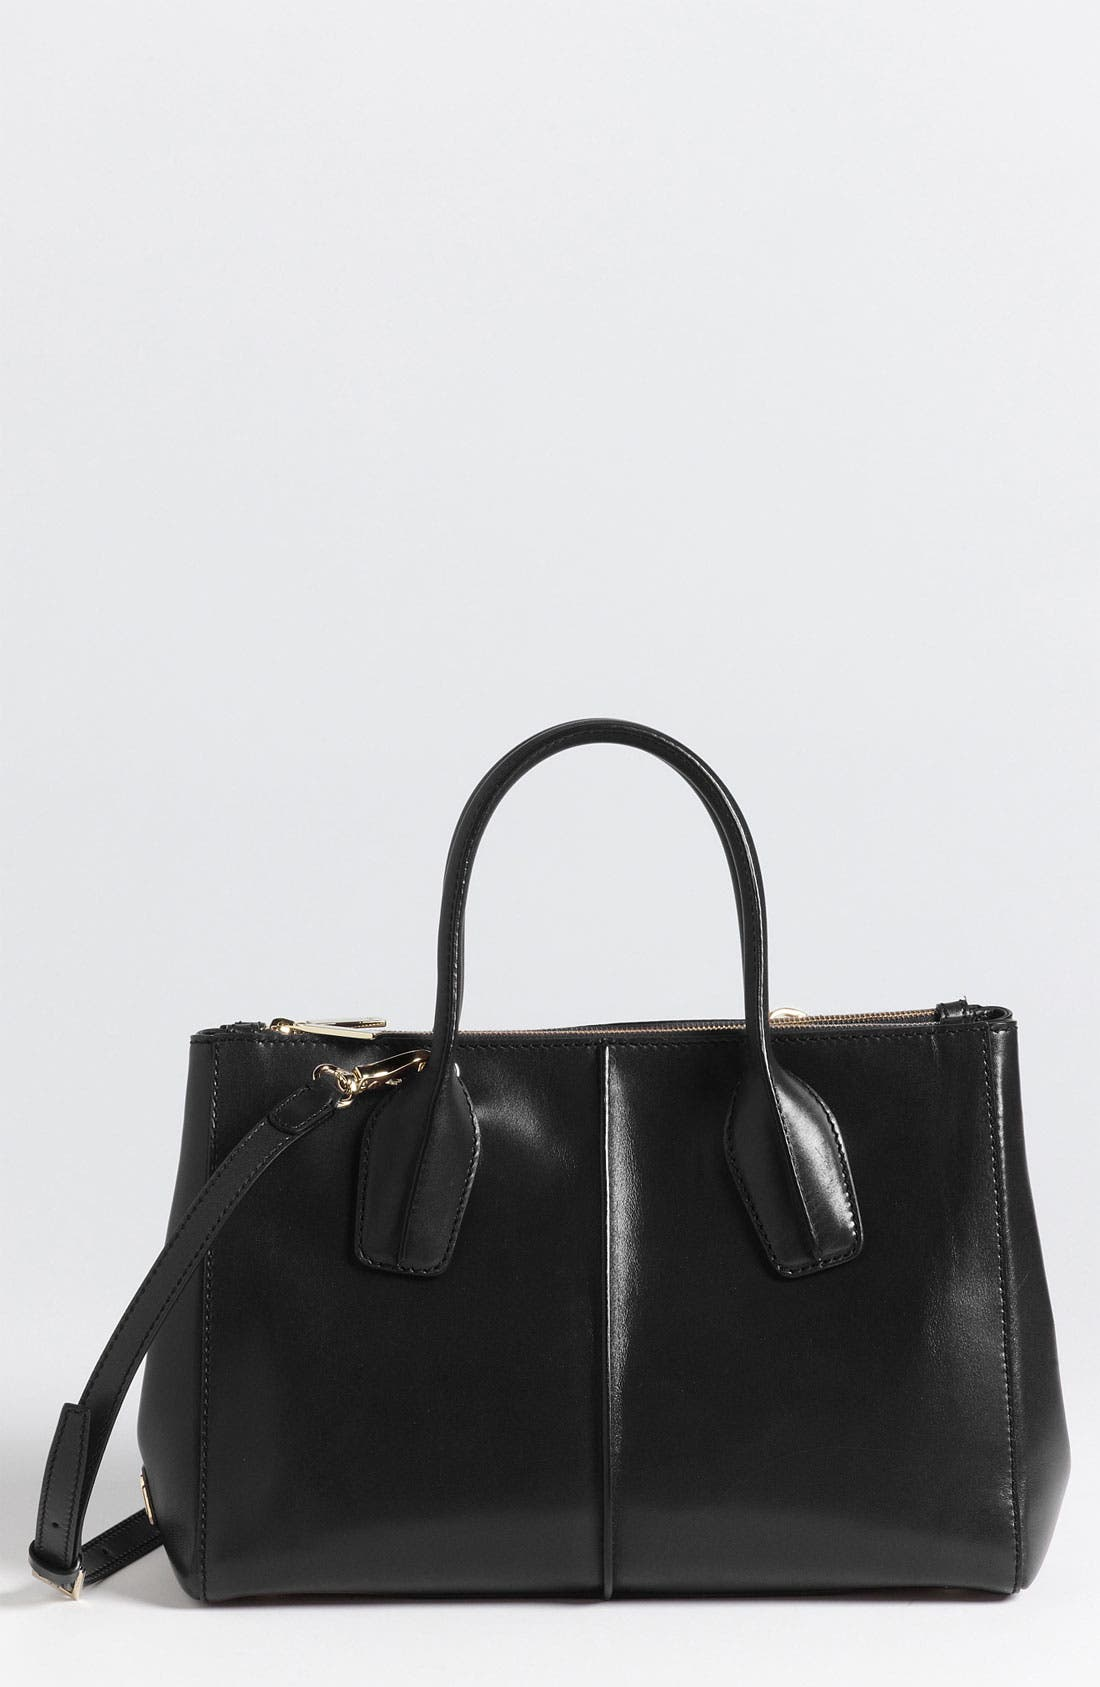 Main Image - Tod's 'D-Styling - Small' Leather Shopper